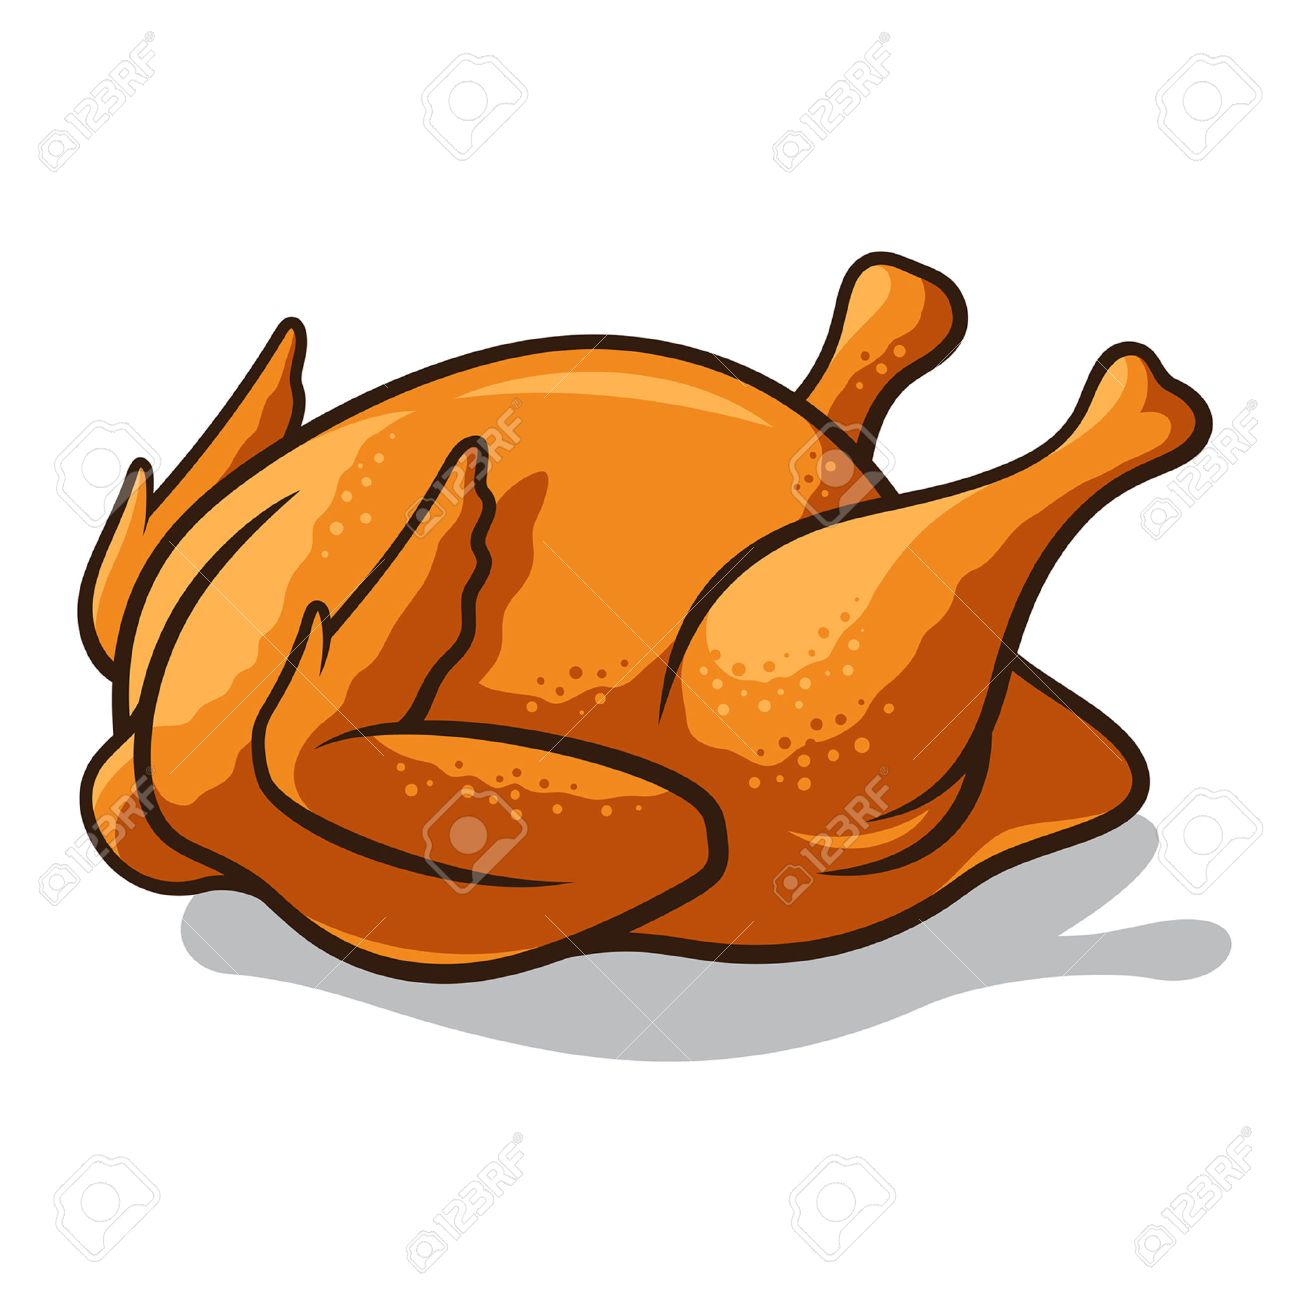 Roasted chicken clipart 6 » Clipart Station.